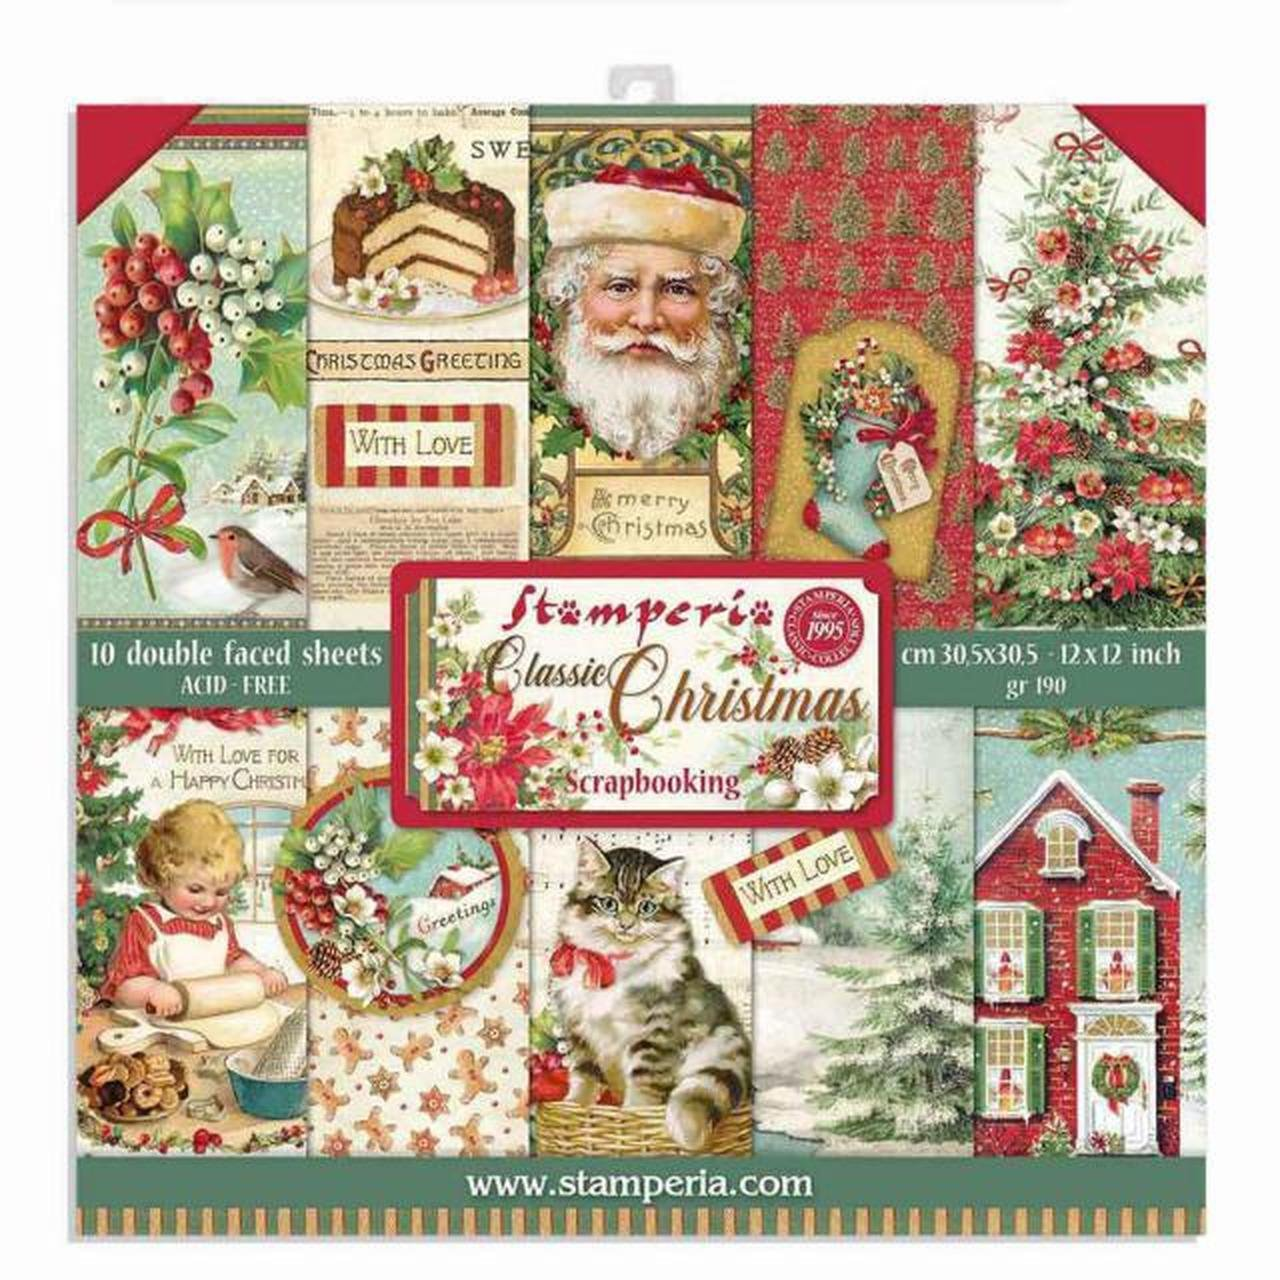 Stamperia's Classic Christmas 12x12 Group